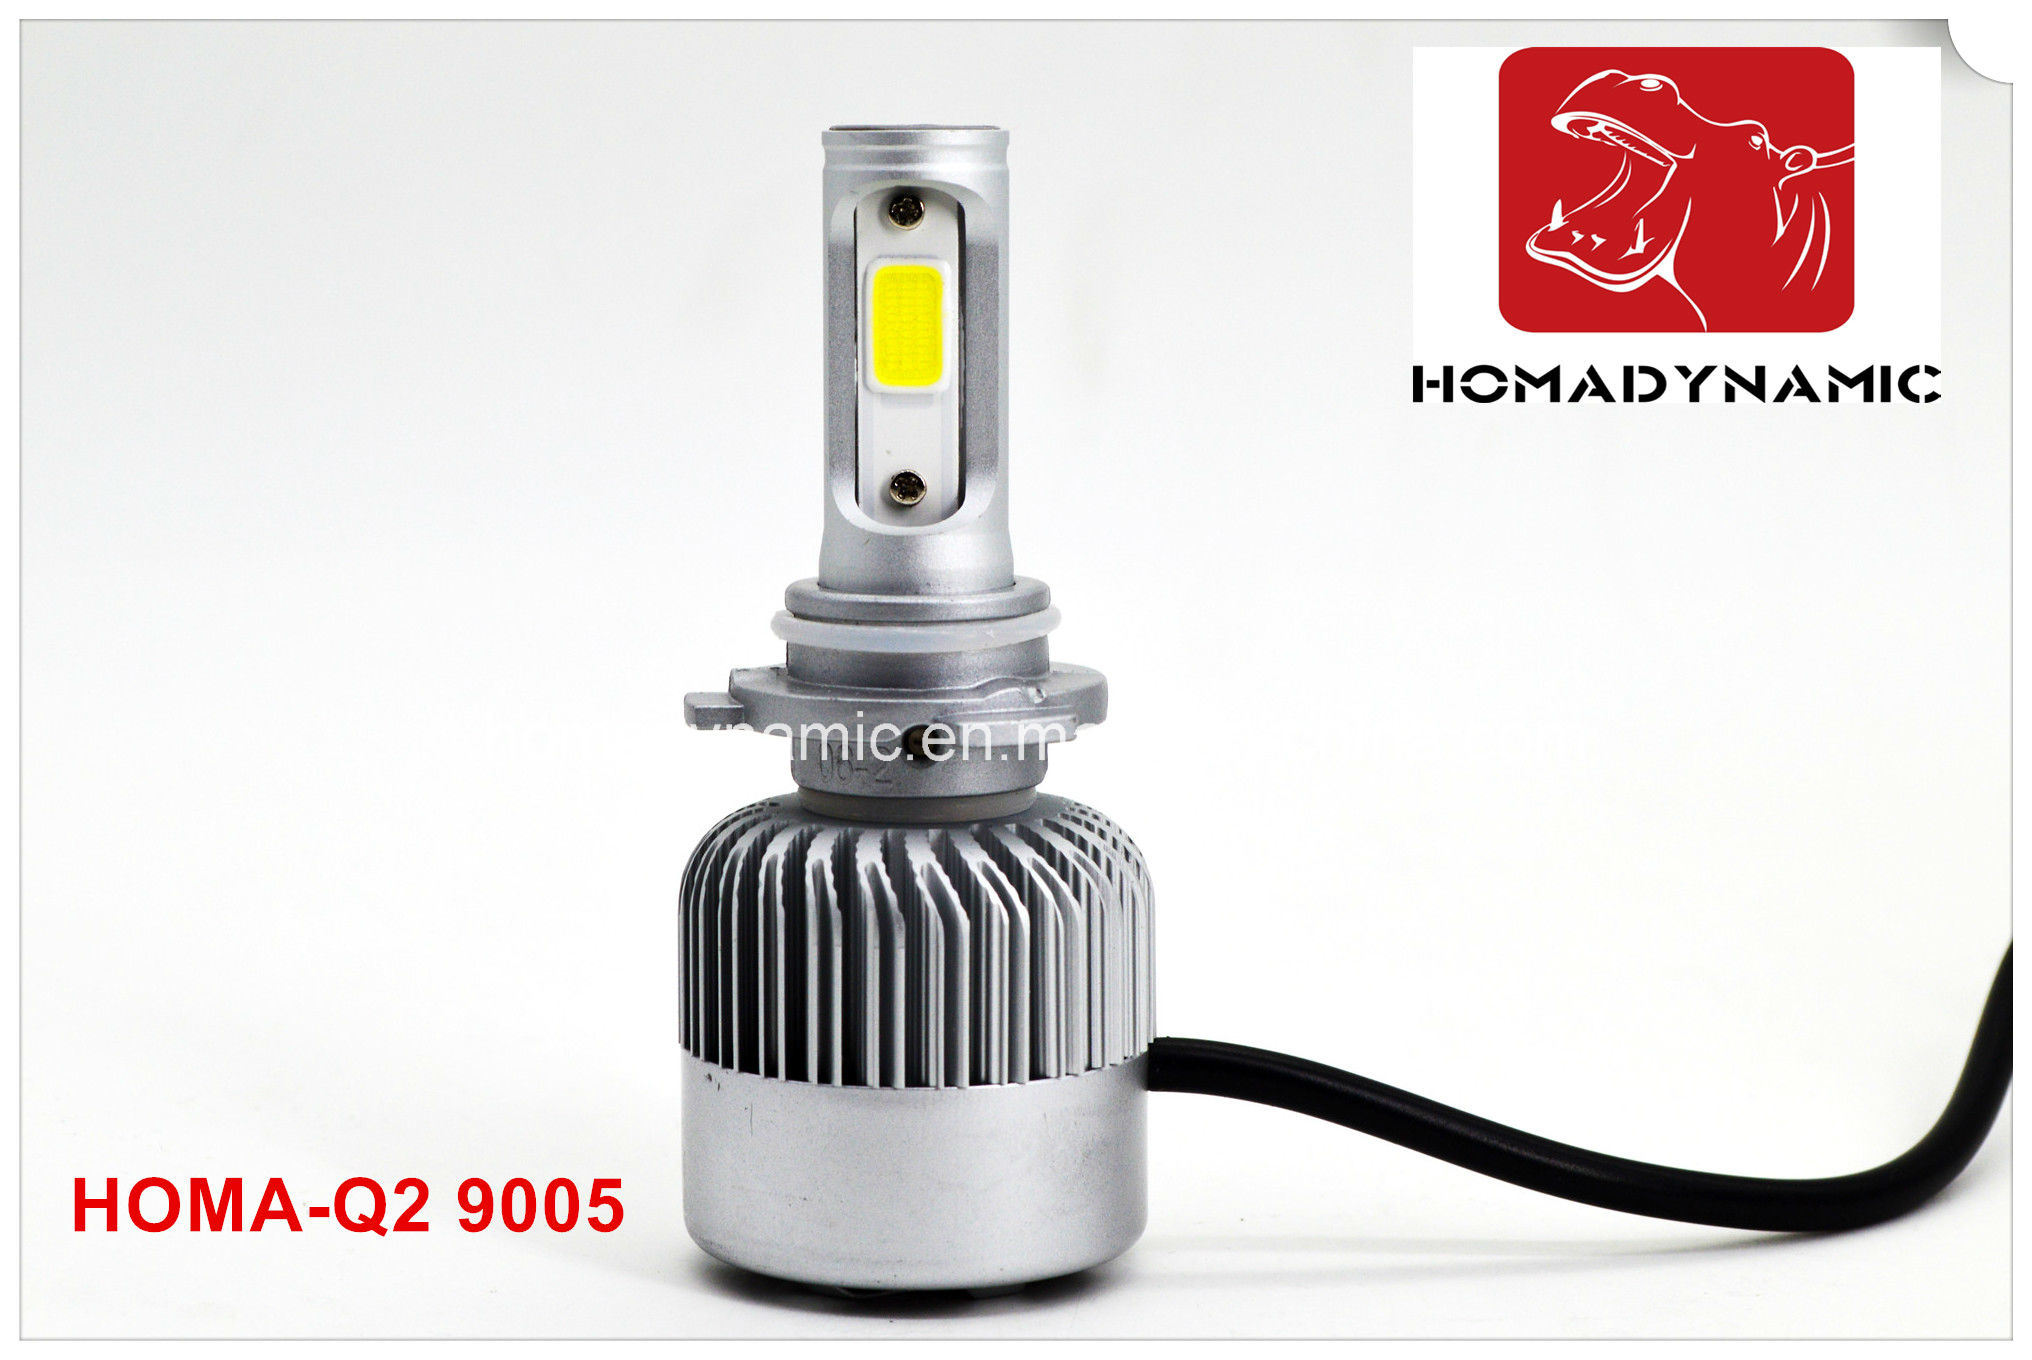 China 2018 Best Seller Cob Q2 Led Headlight 8000lumen Wiring From Bestselling Motorcycle Car Light